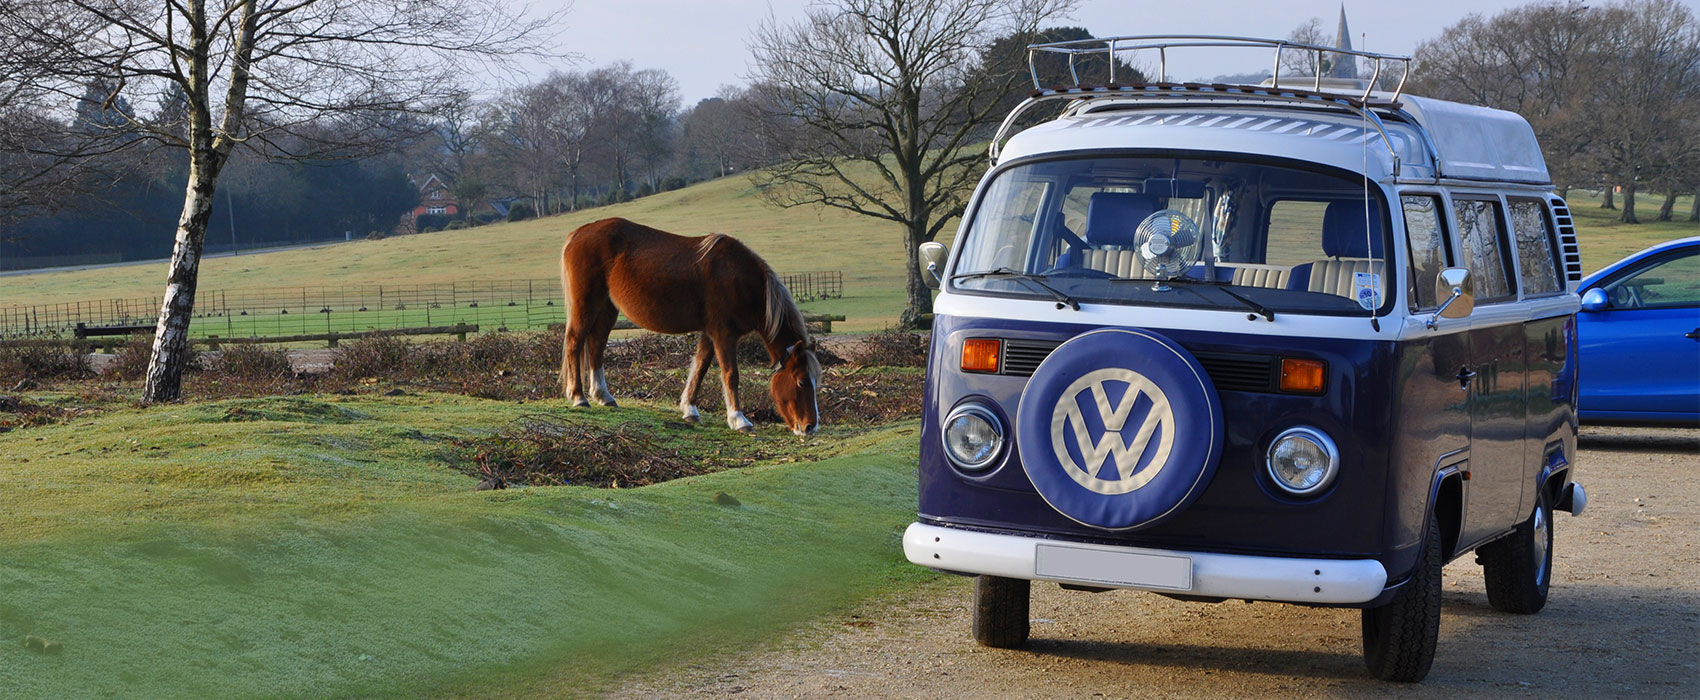 Your VW Adventure Begins Here